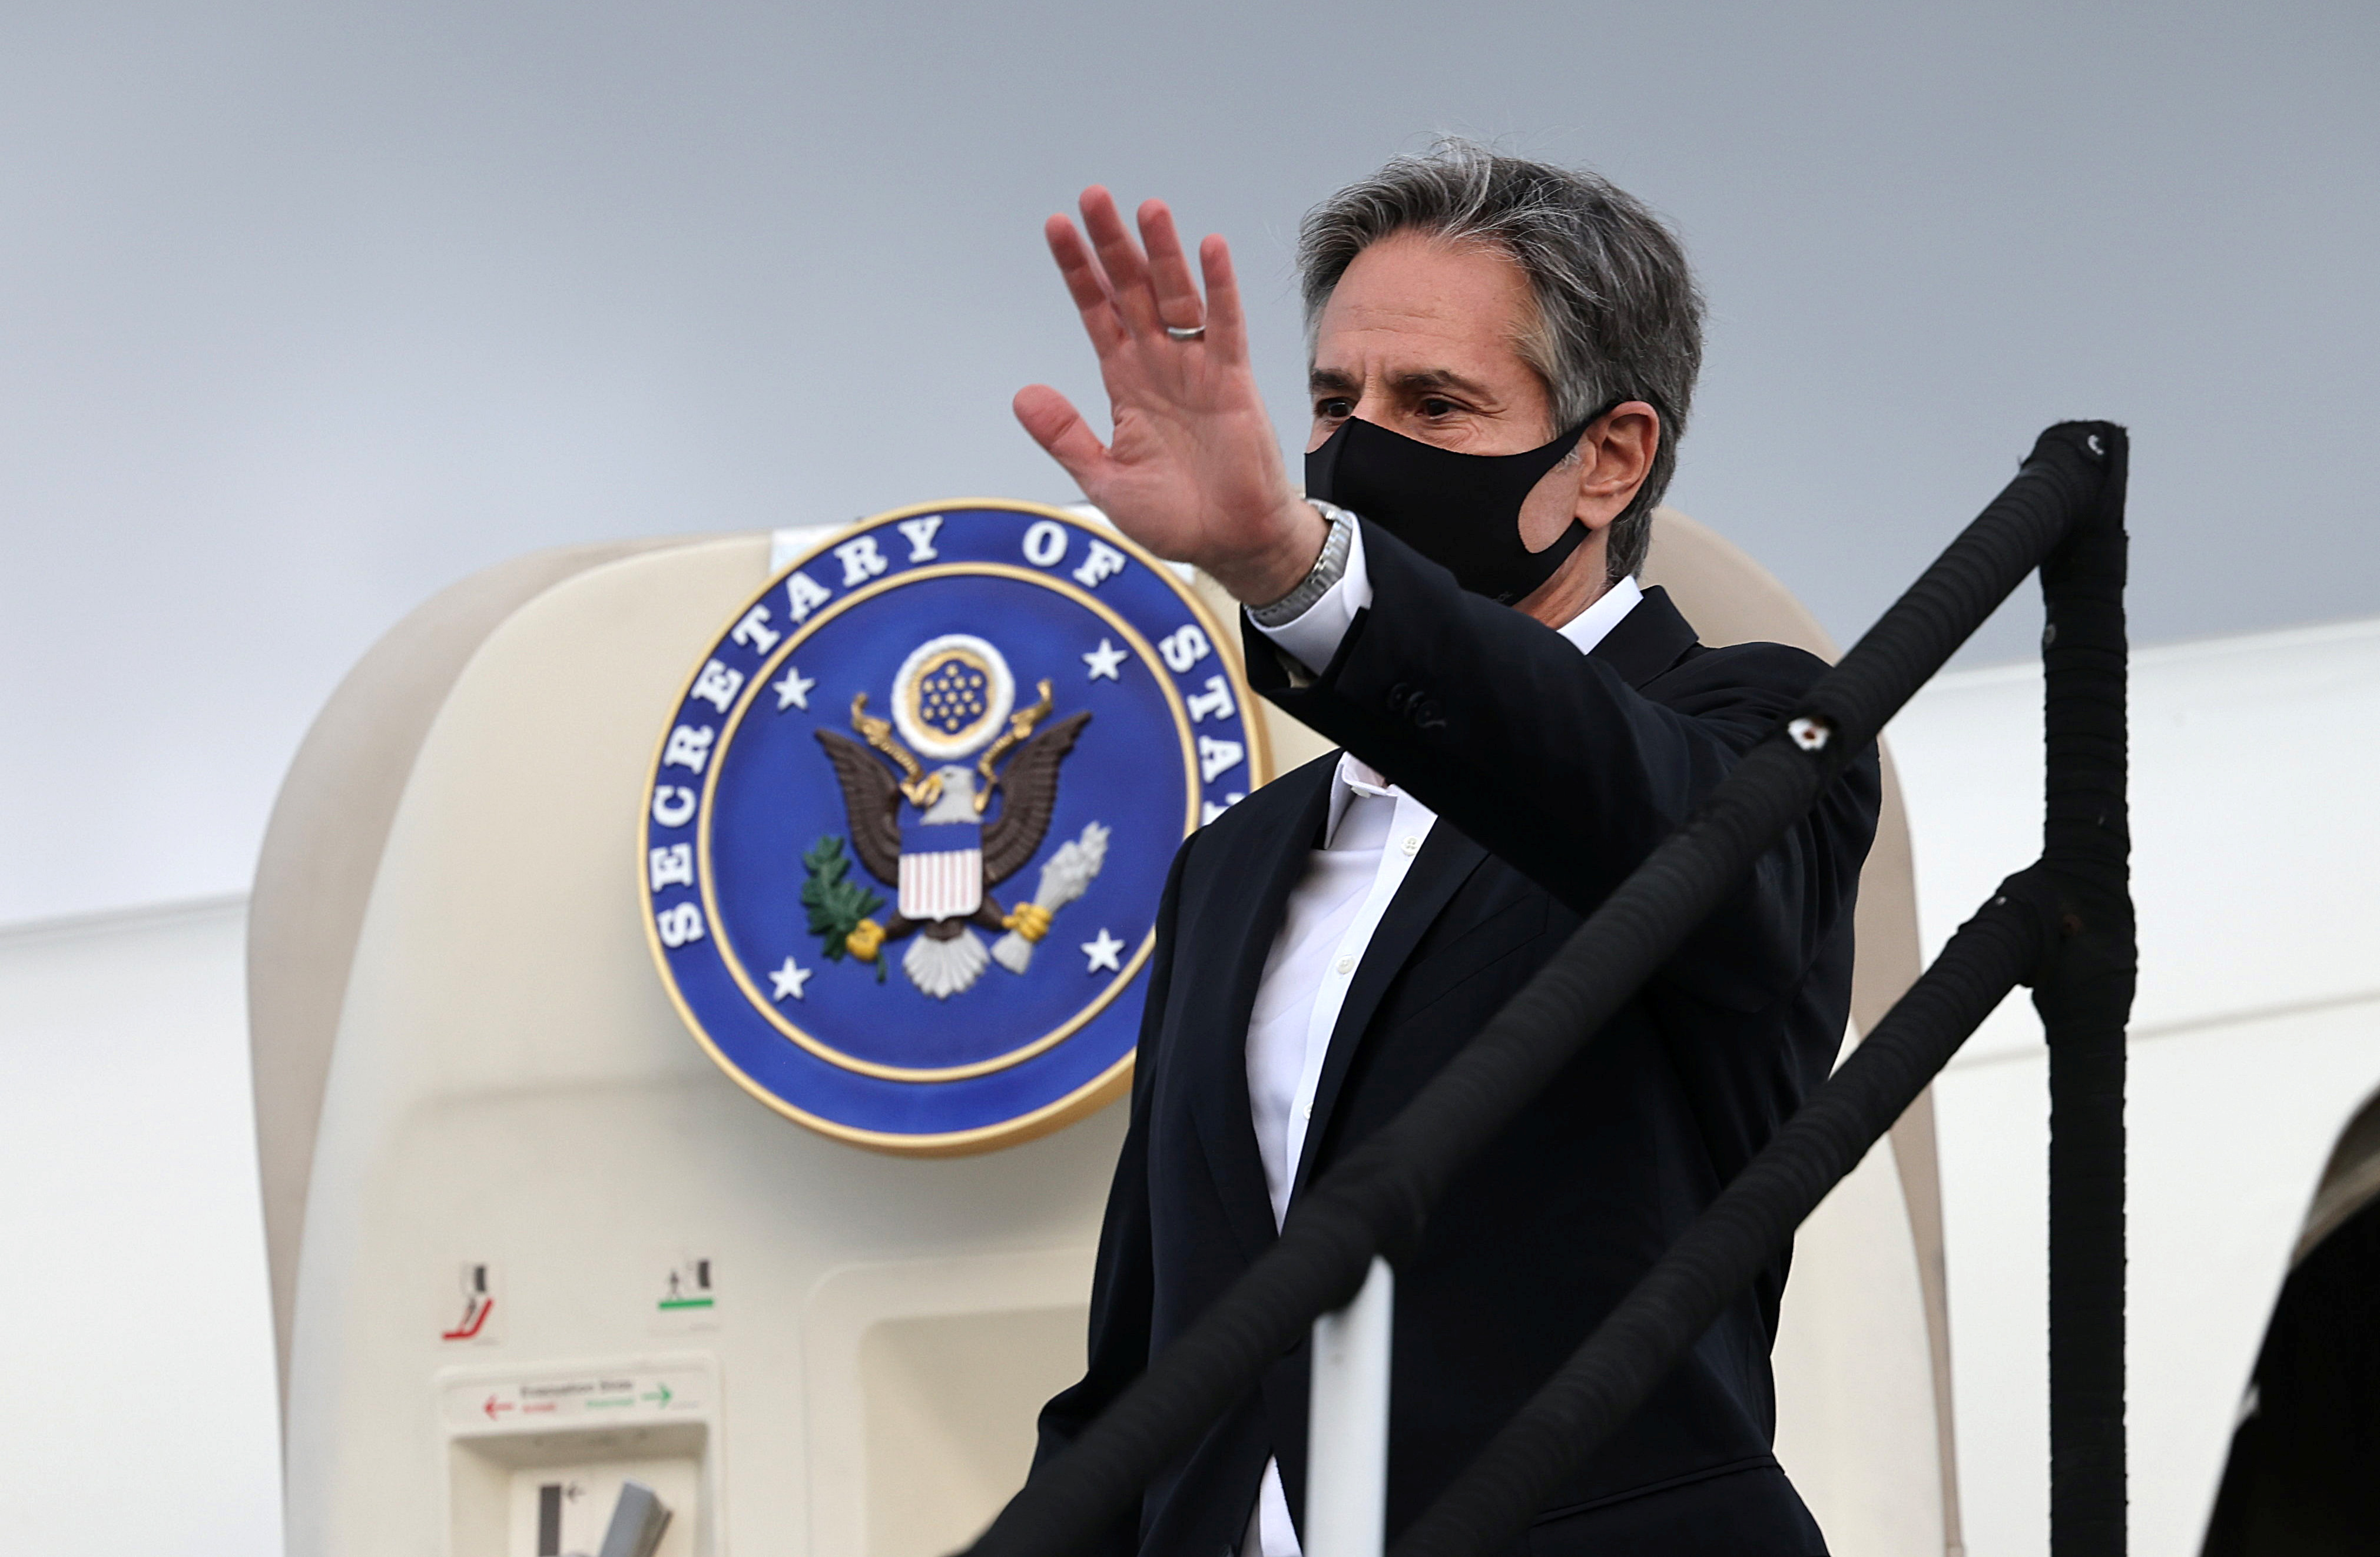 U.S. Secretary of State Antony Blinken waves as he departs from the airport at the end of his visit, in San Jose, Costa Rica June 2, 2021. REUTERS/Evelyn Hockstein